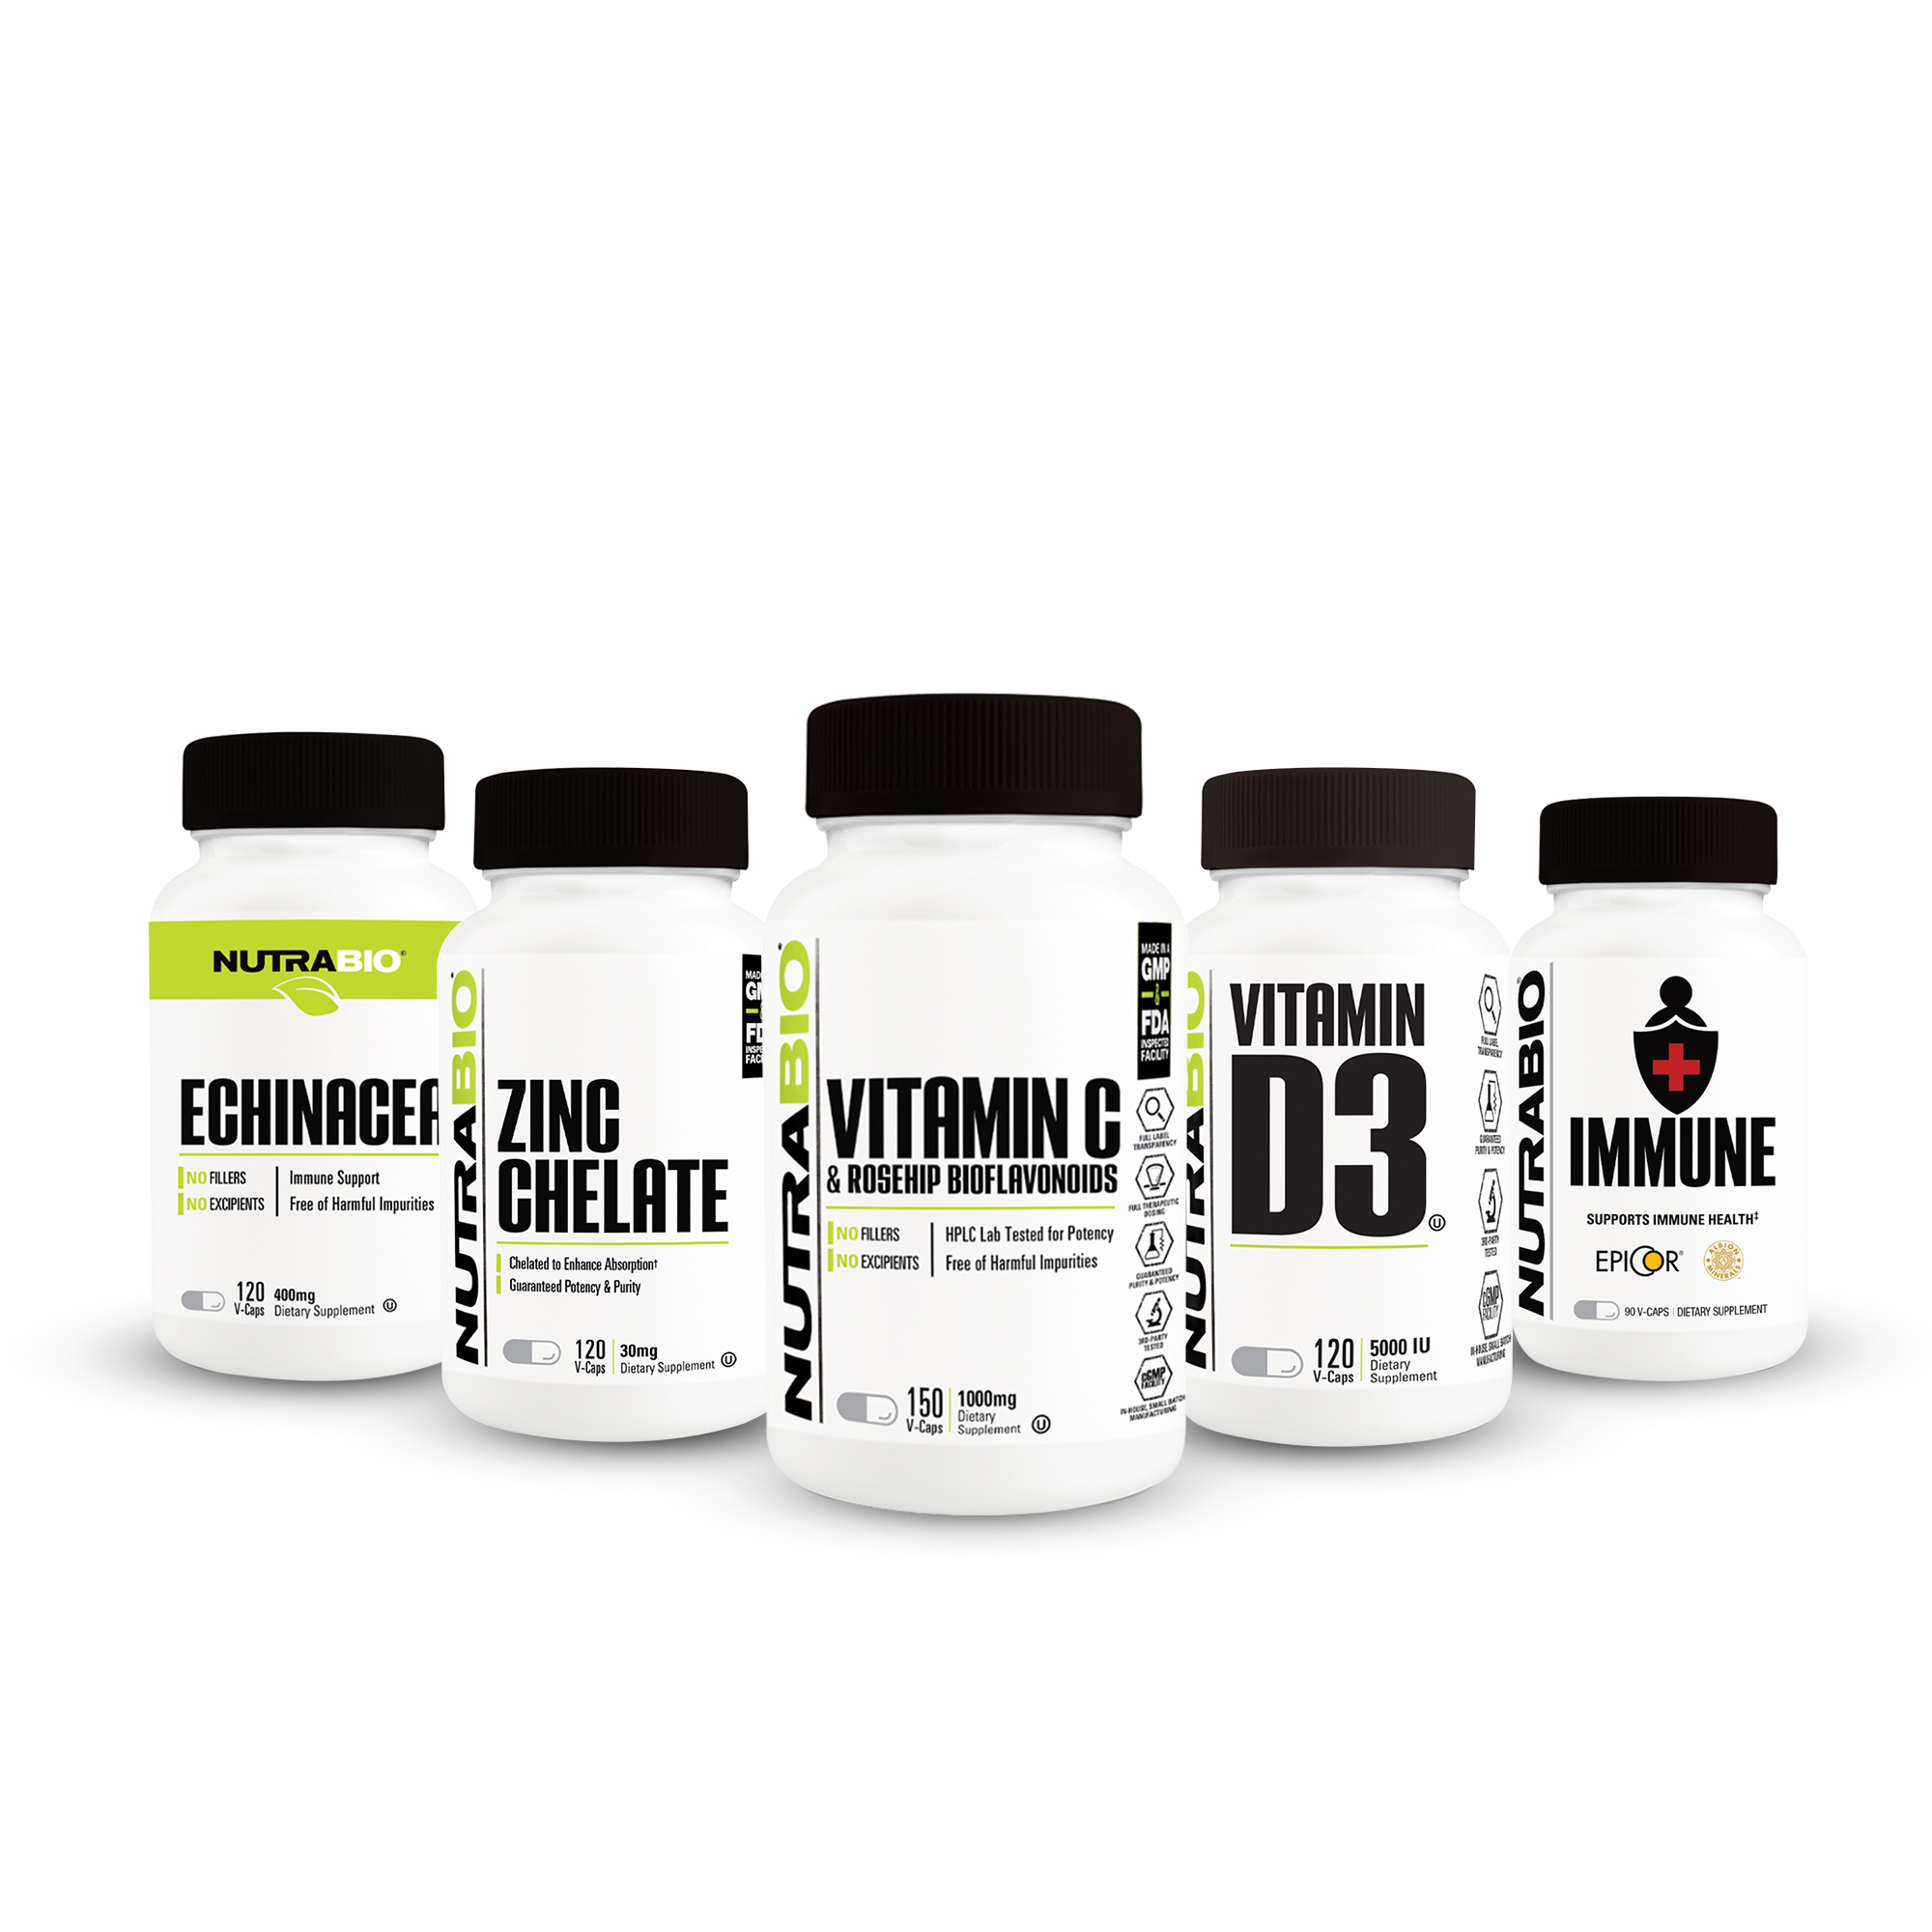 Nutrabio Immune Supplements available at Nutrition Depot Philippines